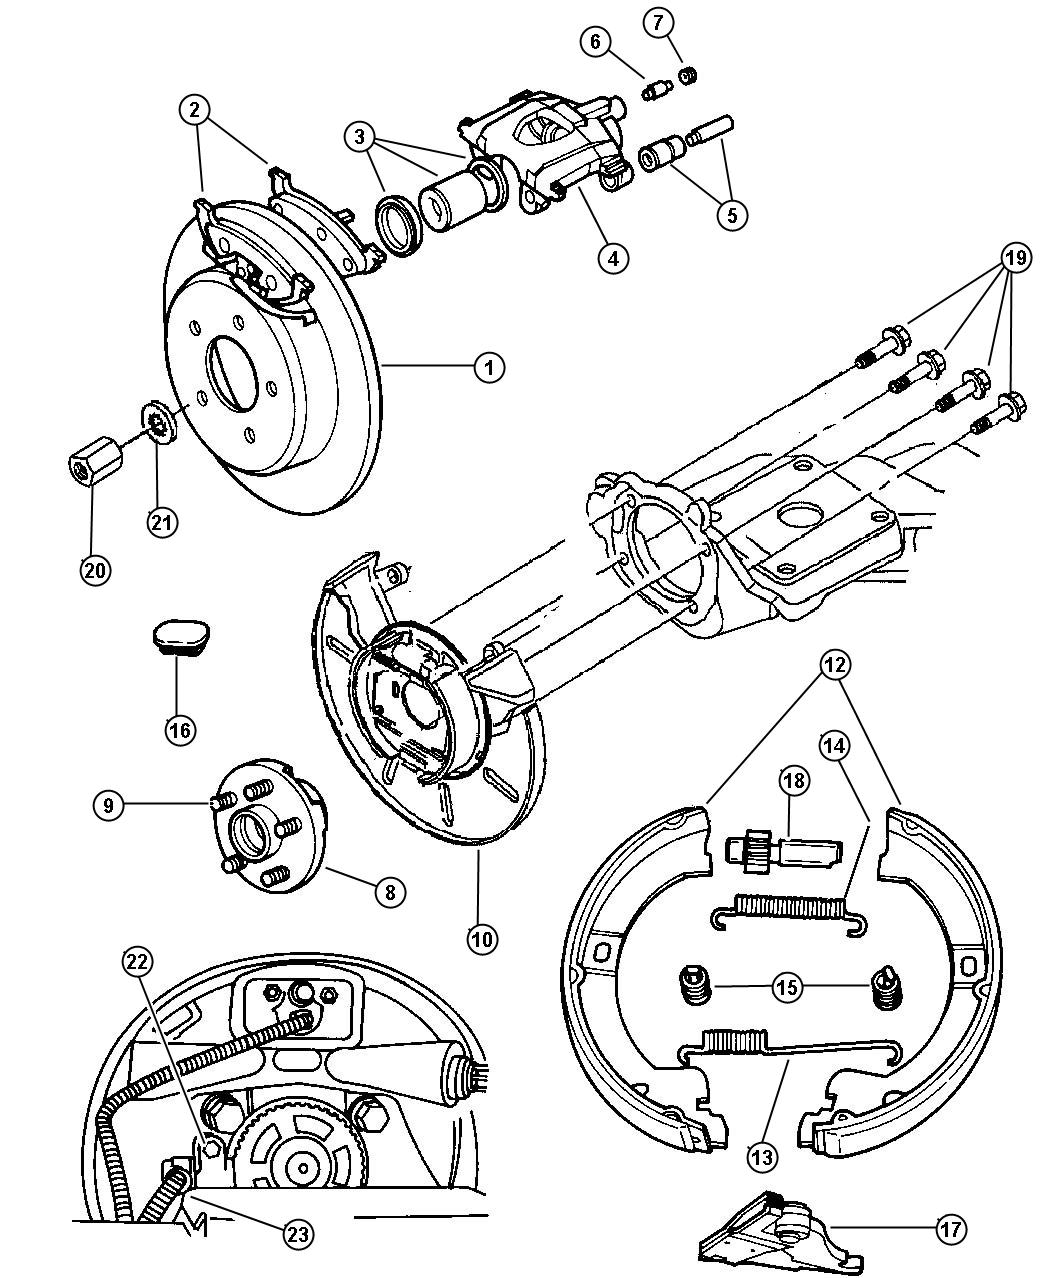 S10 Wiring Guide likewise 1997 Chevy Silverado 1500 Parts furthermore Wiring Diagram 1996 Kia Sportage as well 97 Infiniti Wiring Diagram also Wiring Diagram 2005 Pontiac Sv6. on p 0900c1528026aae1